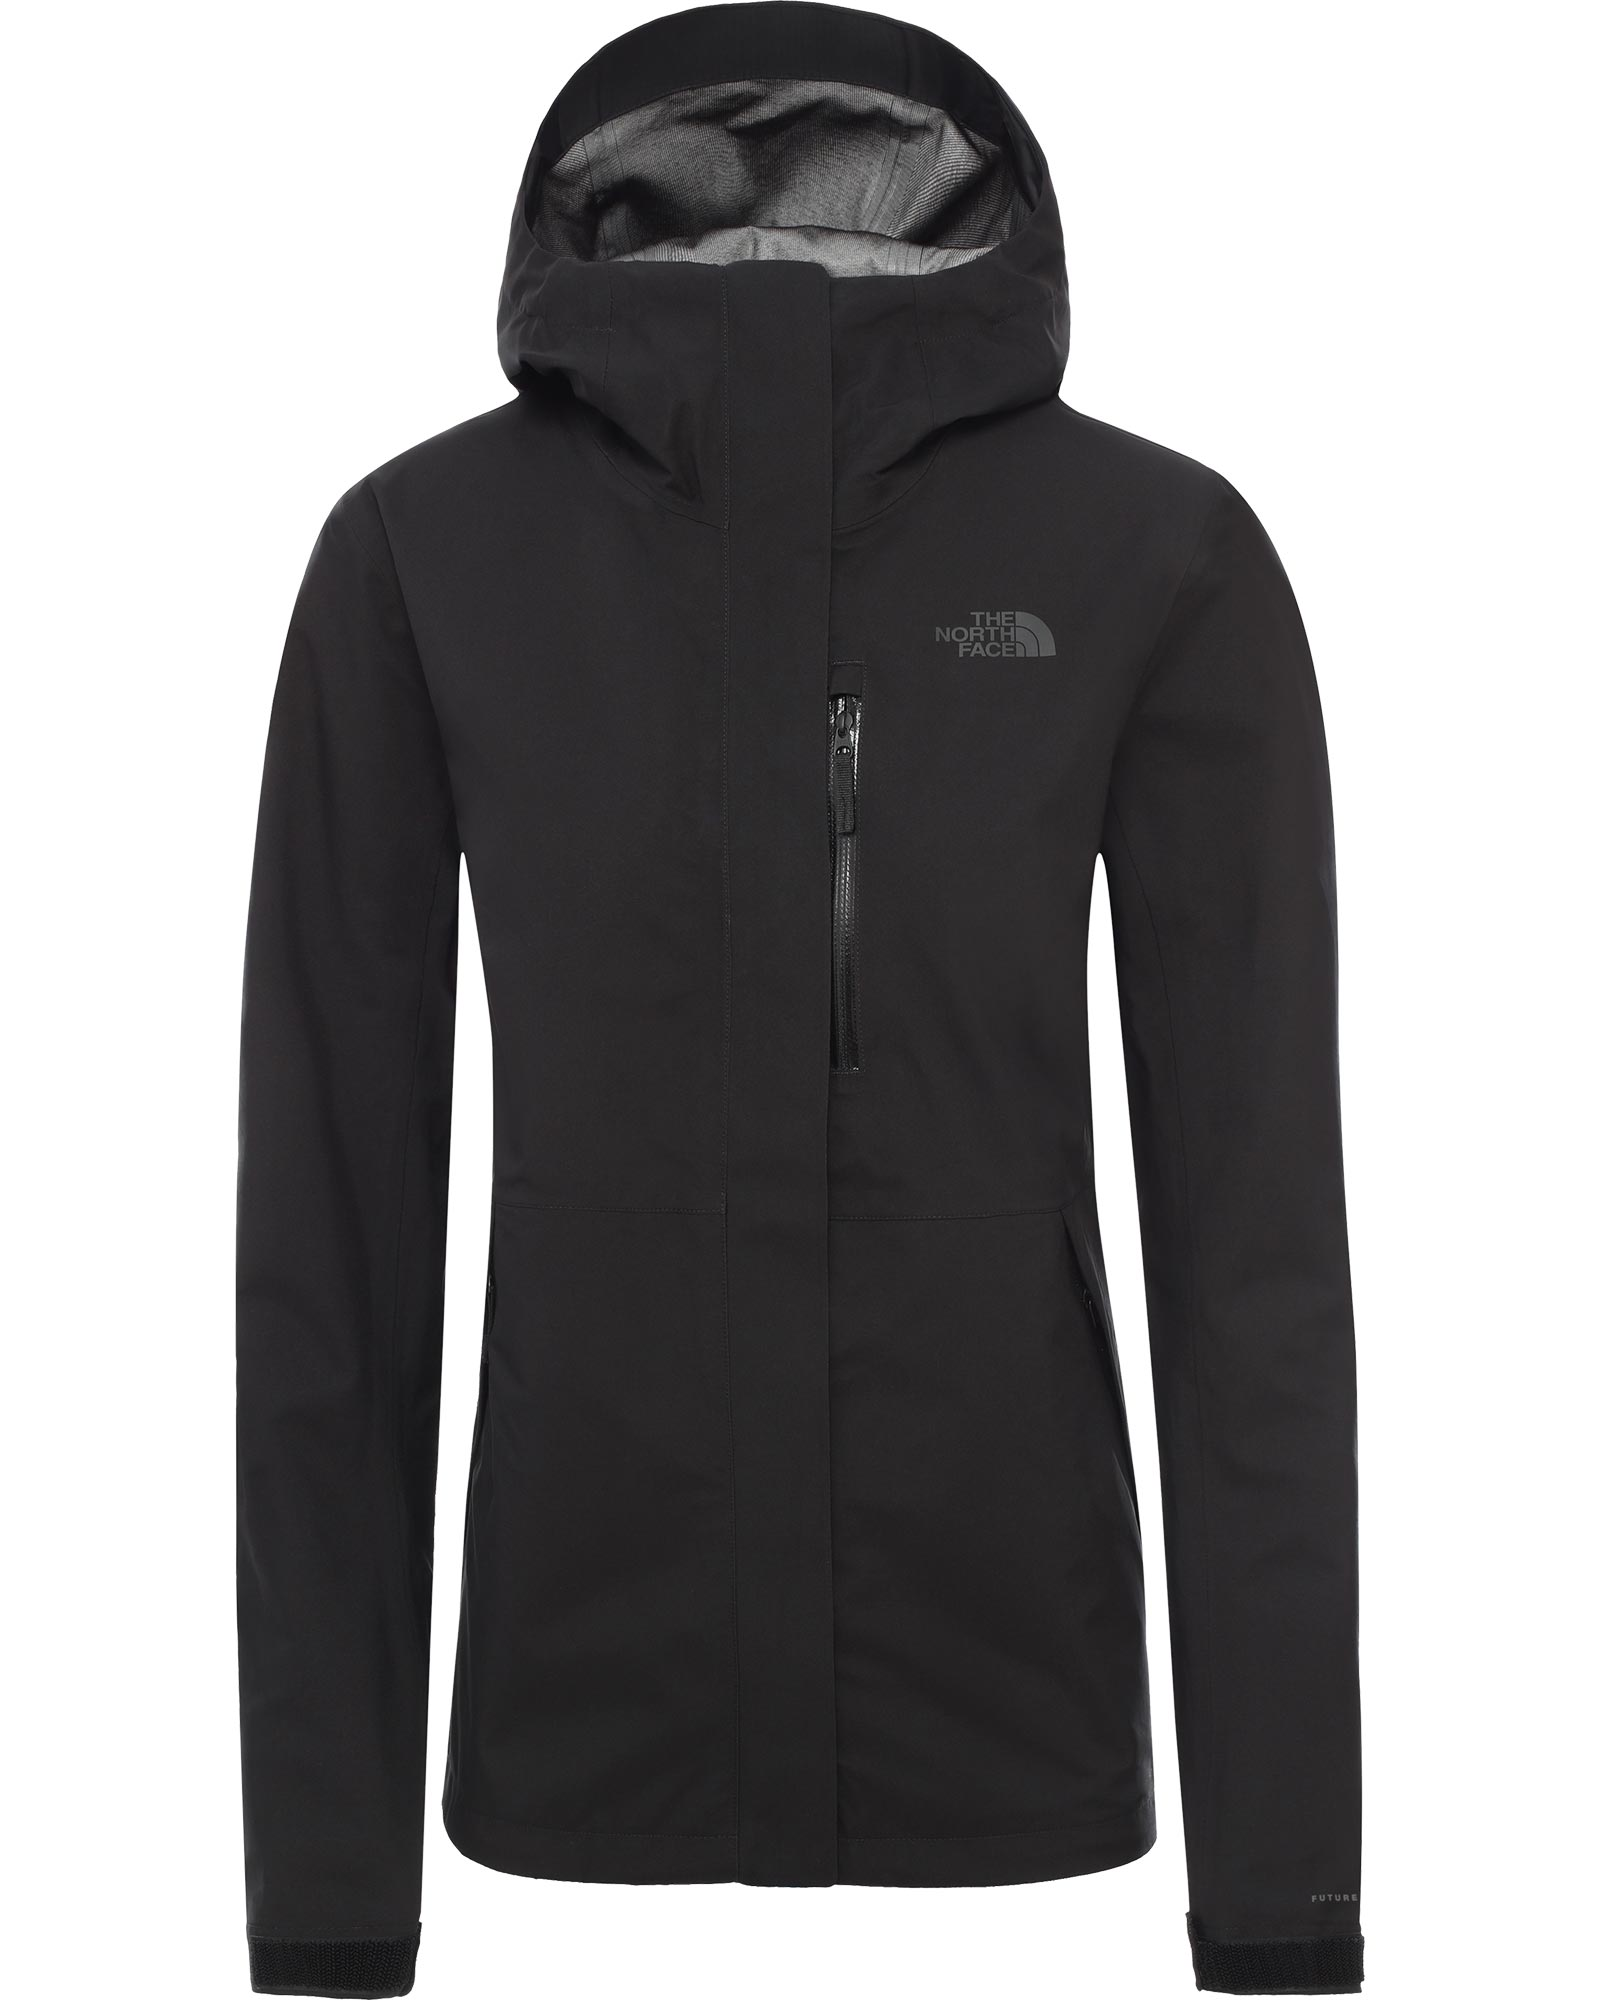 The North Face Women's Dryzzle FUTURELIGHT Jacket 0